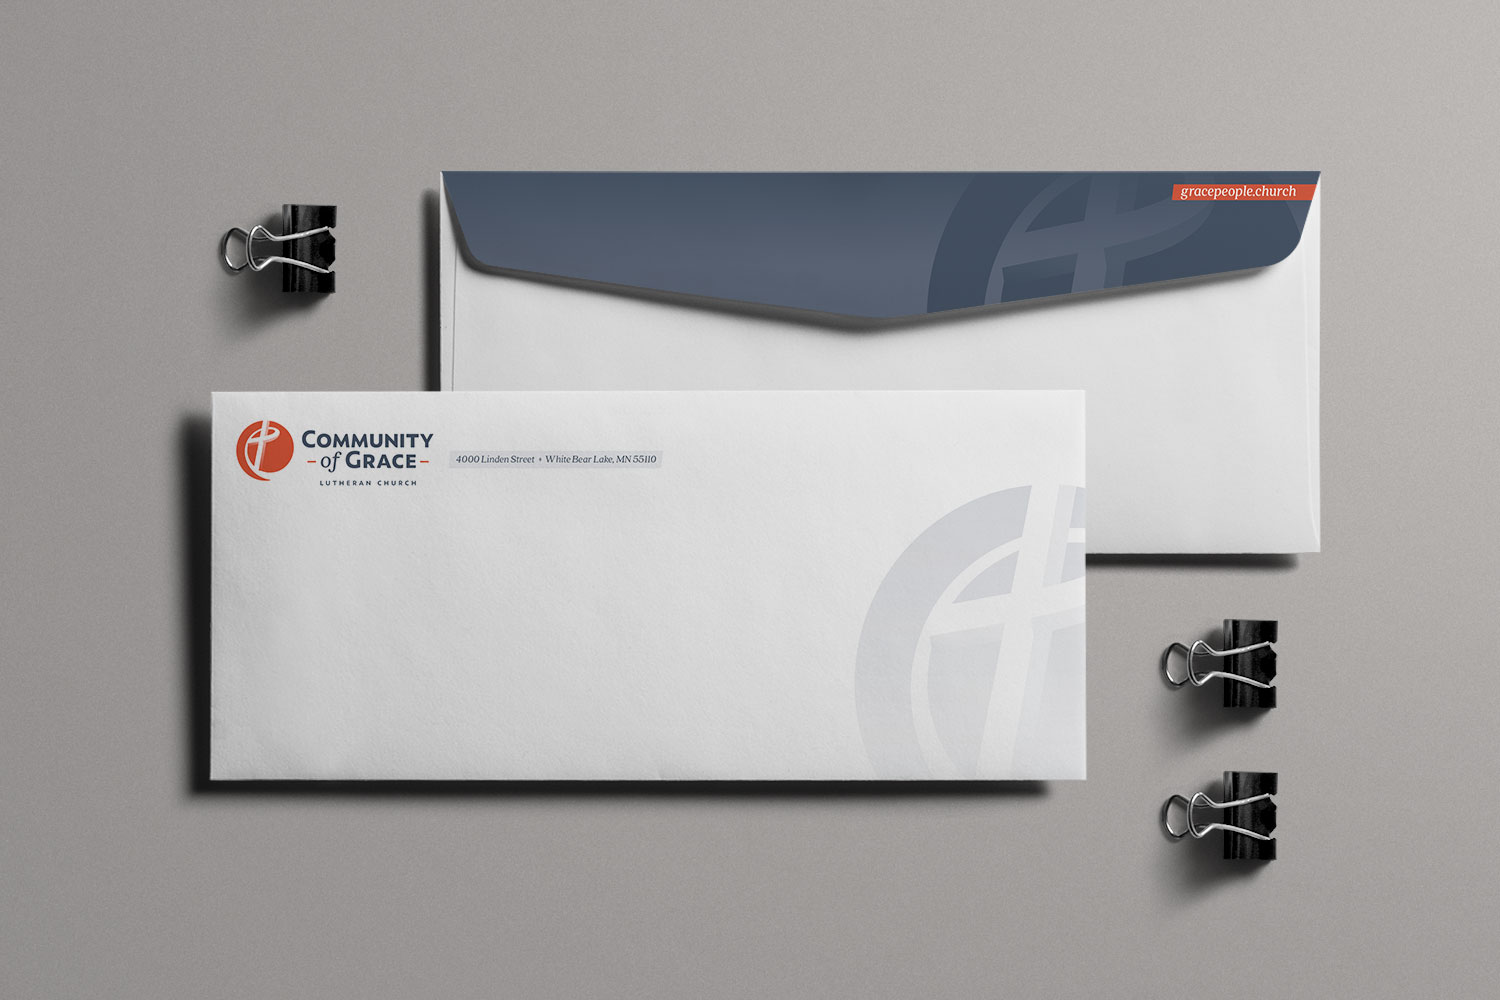 Community of Grace business envelope design by Jeff Miller, HellothisisJeff Design